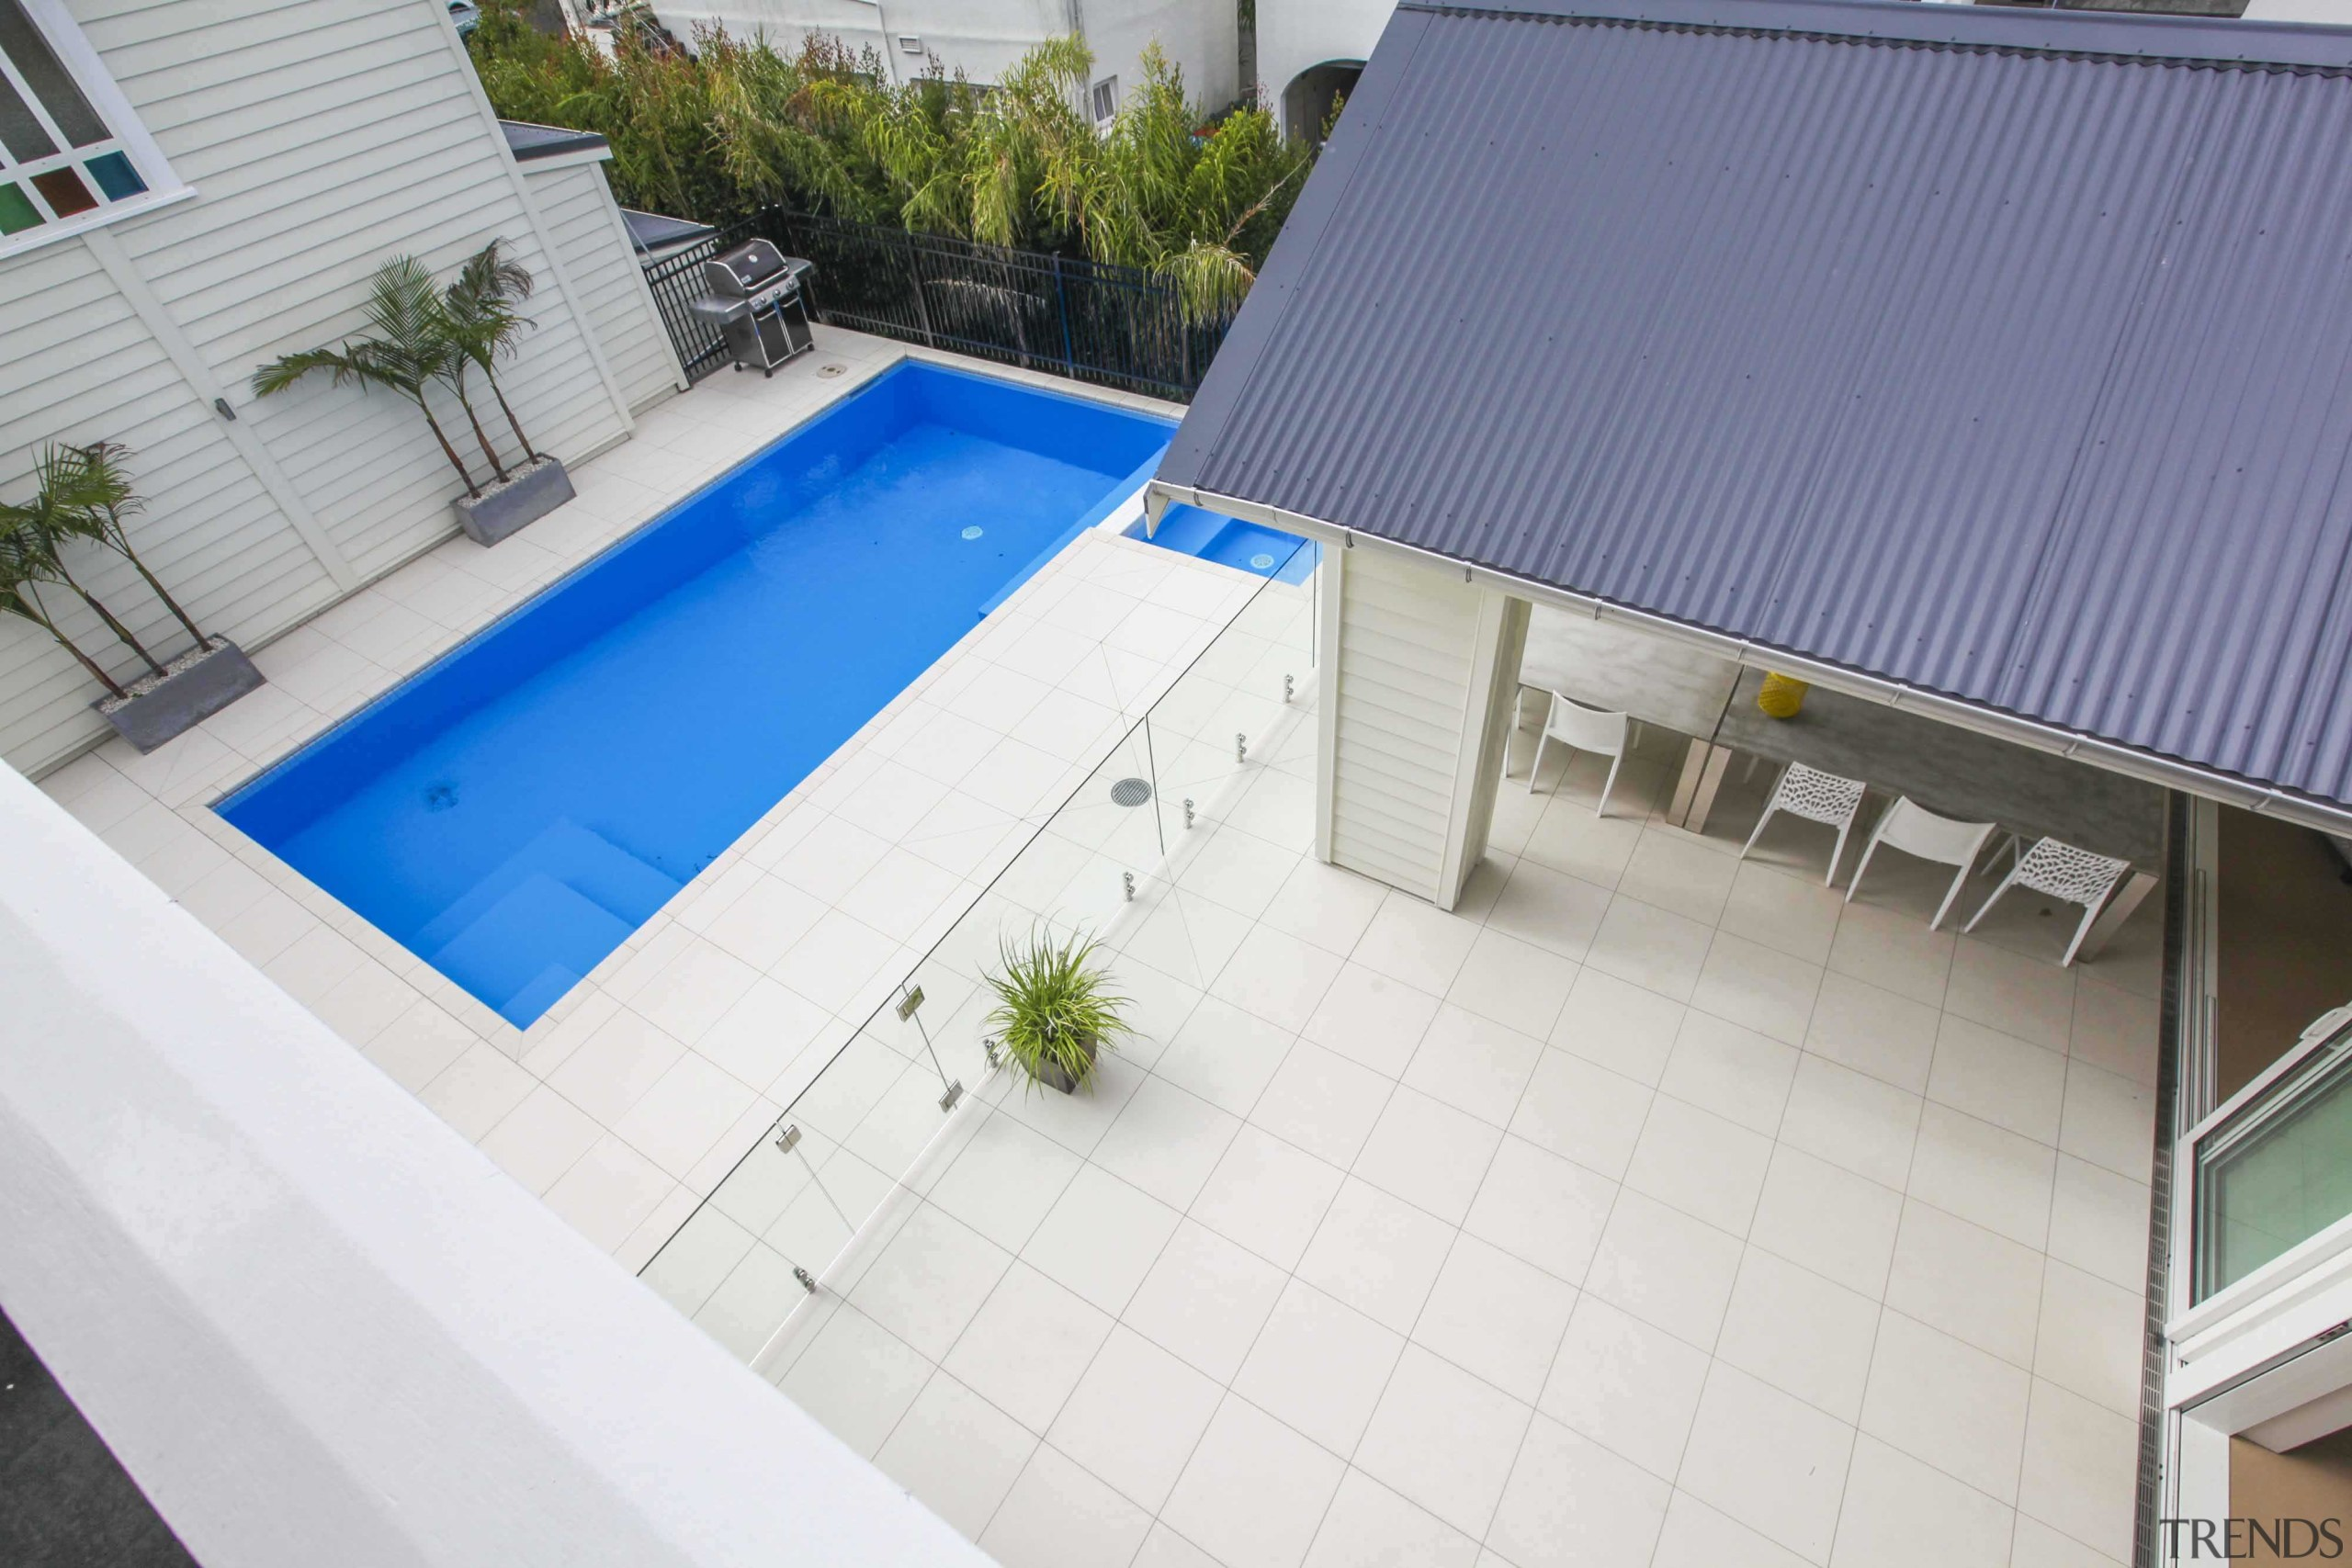 A glass balustrade prevents unwanted access to the architecture, area, daylighting, home, house, property, real estate, residential area, roof, swimming pool, window, white